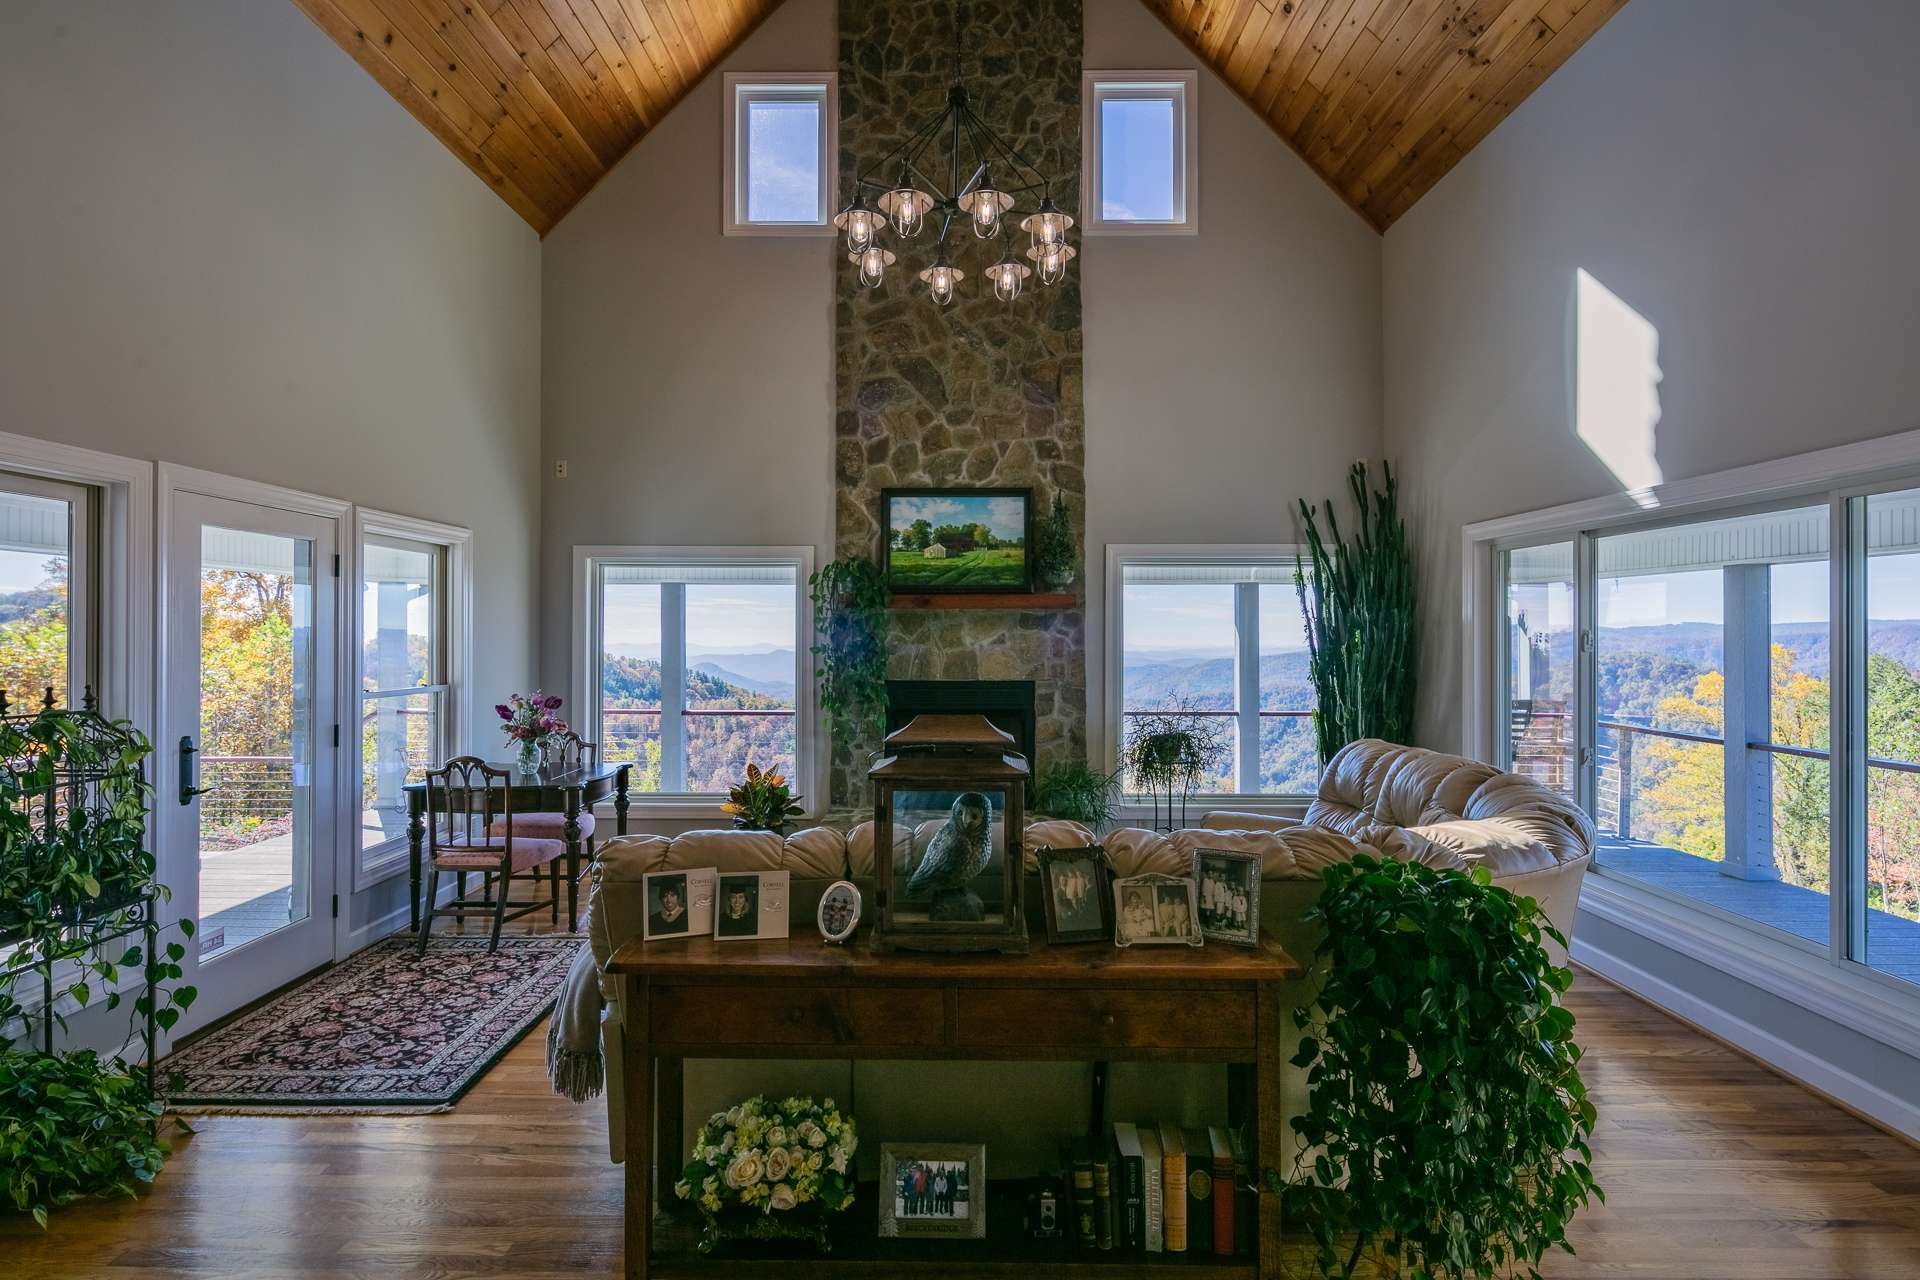 The living area features high vaulted wood ceilings, gleaming wood floors, massive floor to ceiling stone fireplace, and a wall of windows to showcase the views that include southern views into Piedmont North Carolina and western views to Grandfather Mountain, Sugar and Beech Mountains.